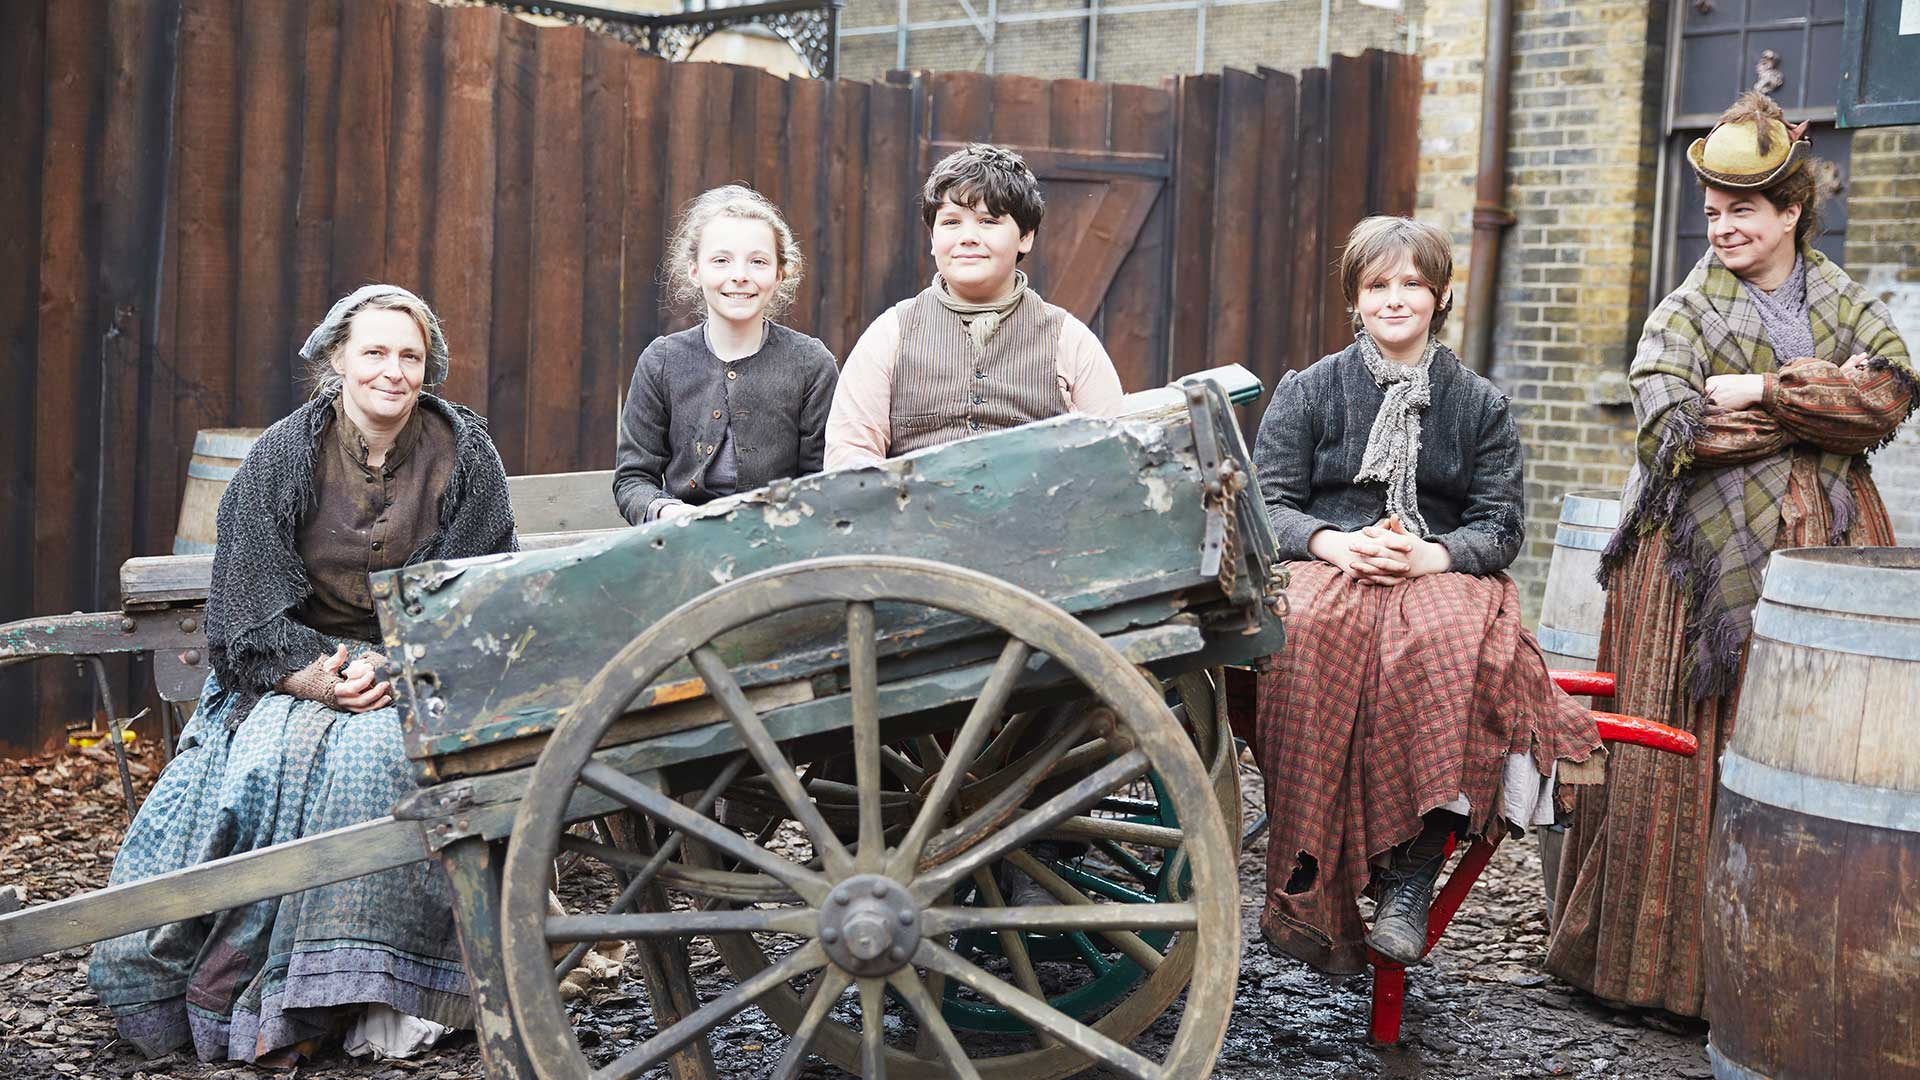 Allison Potter, Olivia Oldfield, James Howarth, Heather Oldfield, Wiebke Bird cart horse